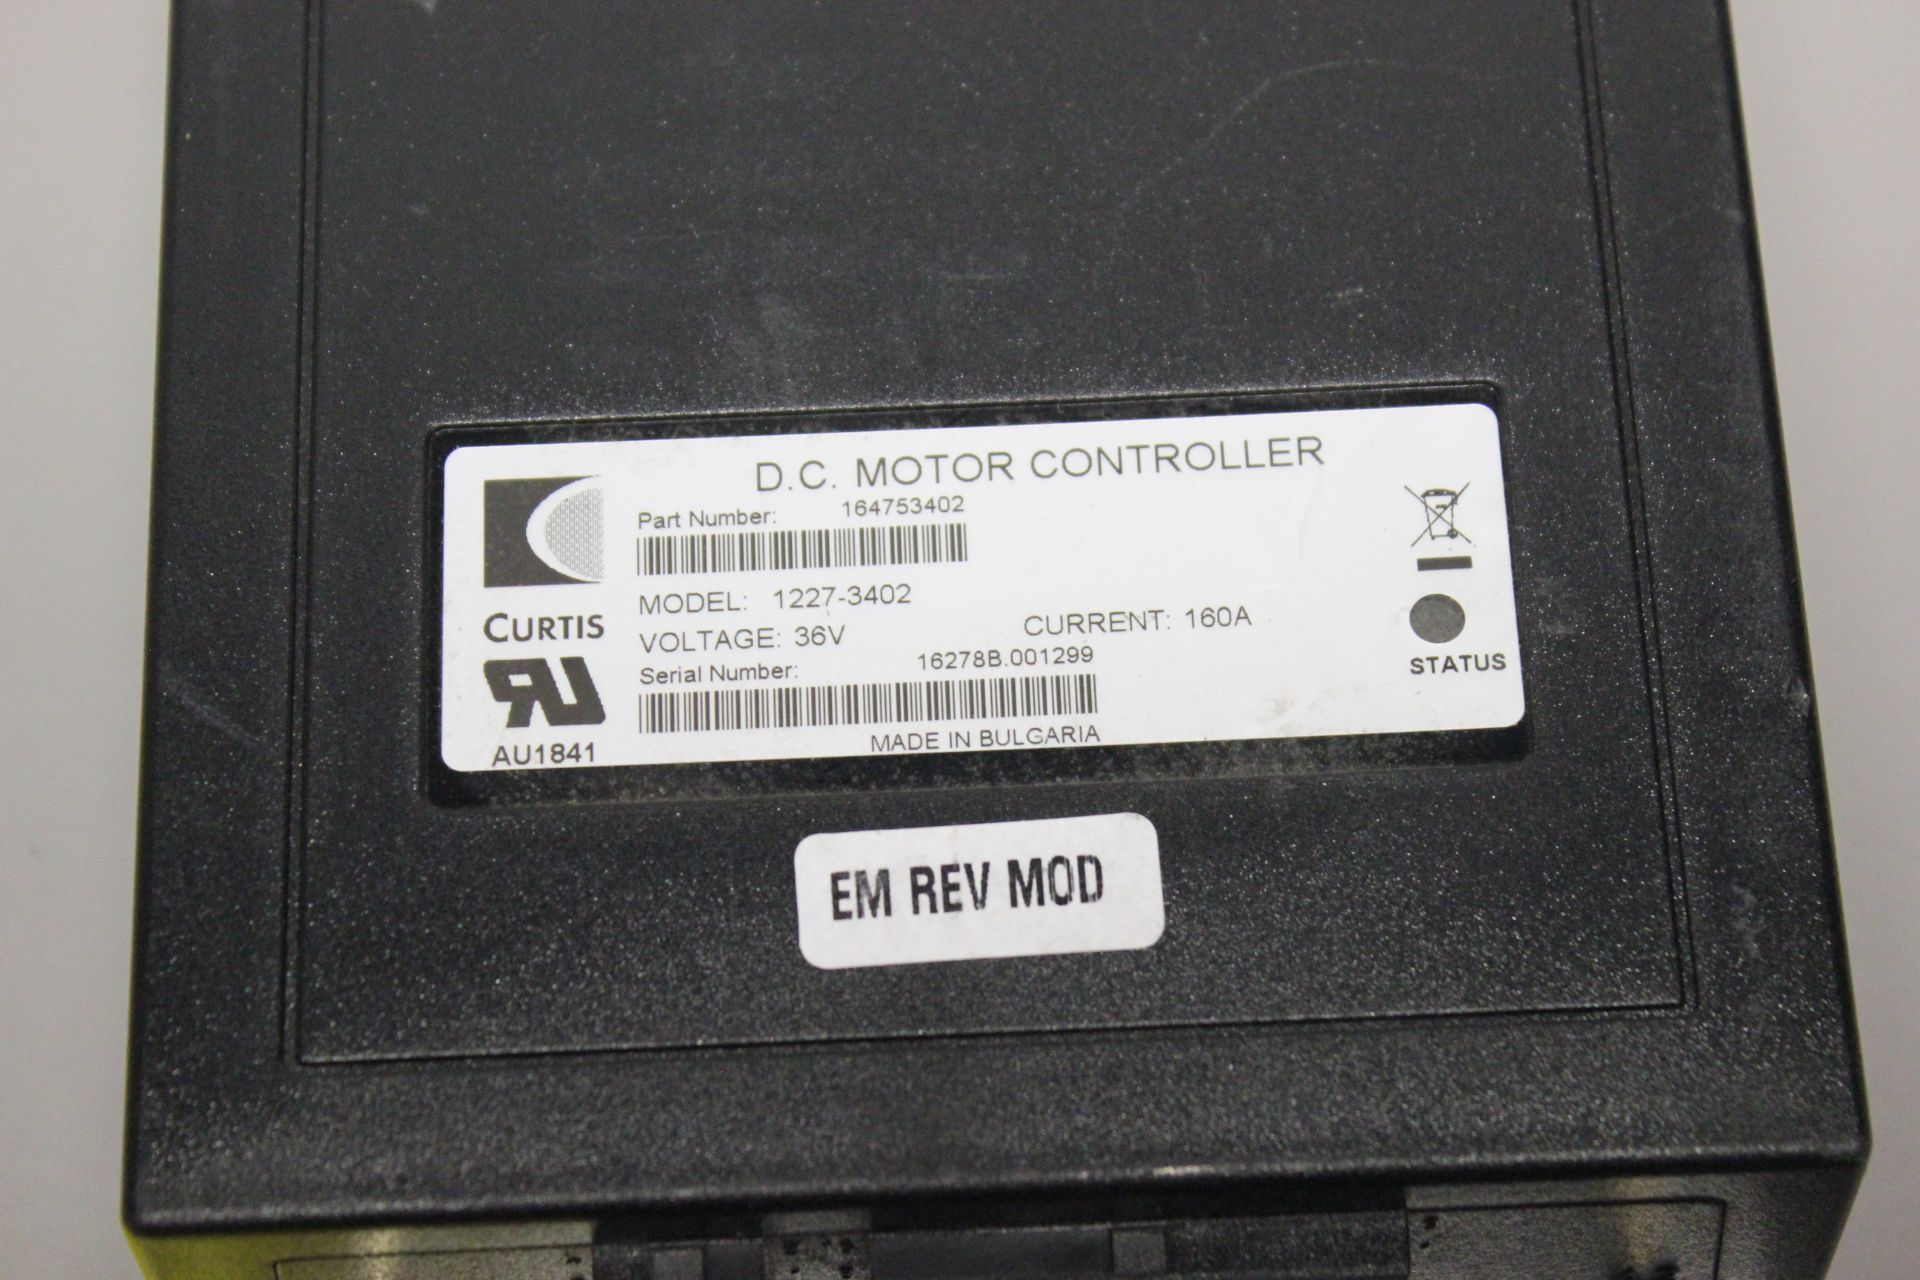 UNUSED CURTIS DC MOTOR CONTROLLER - Image 2 of 4